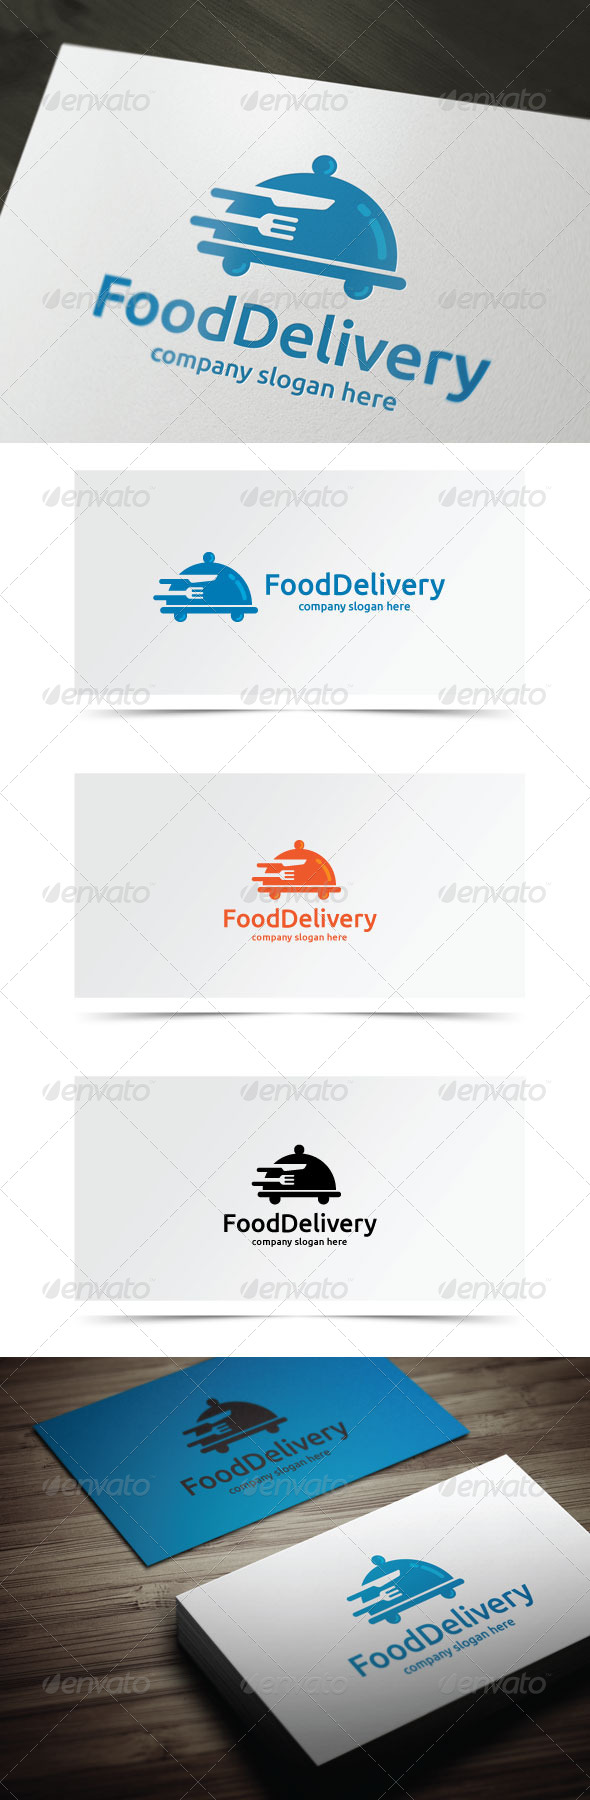 GraphicRiver Food Delivery 7973416